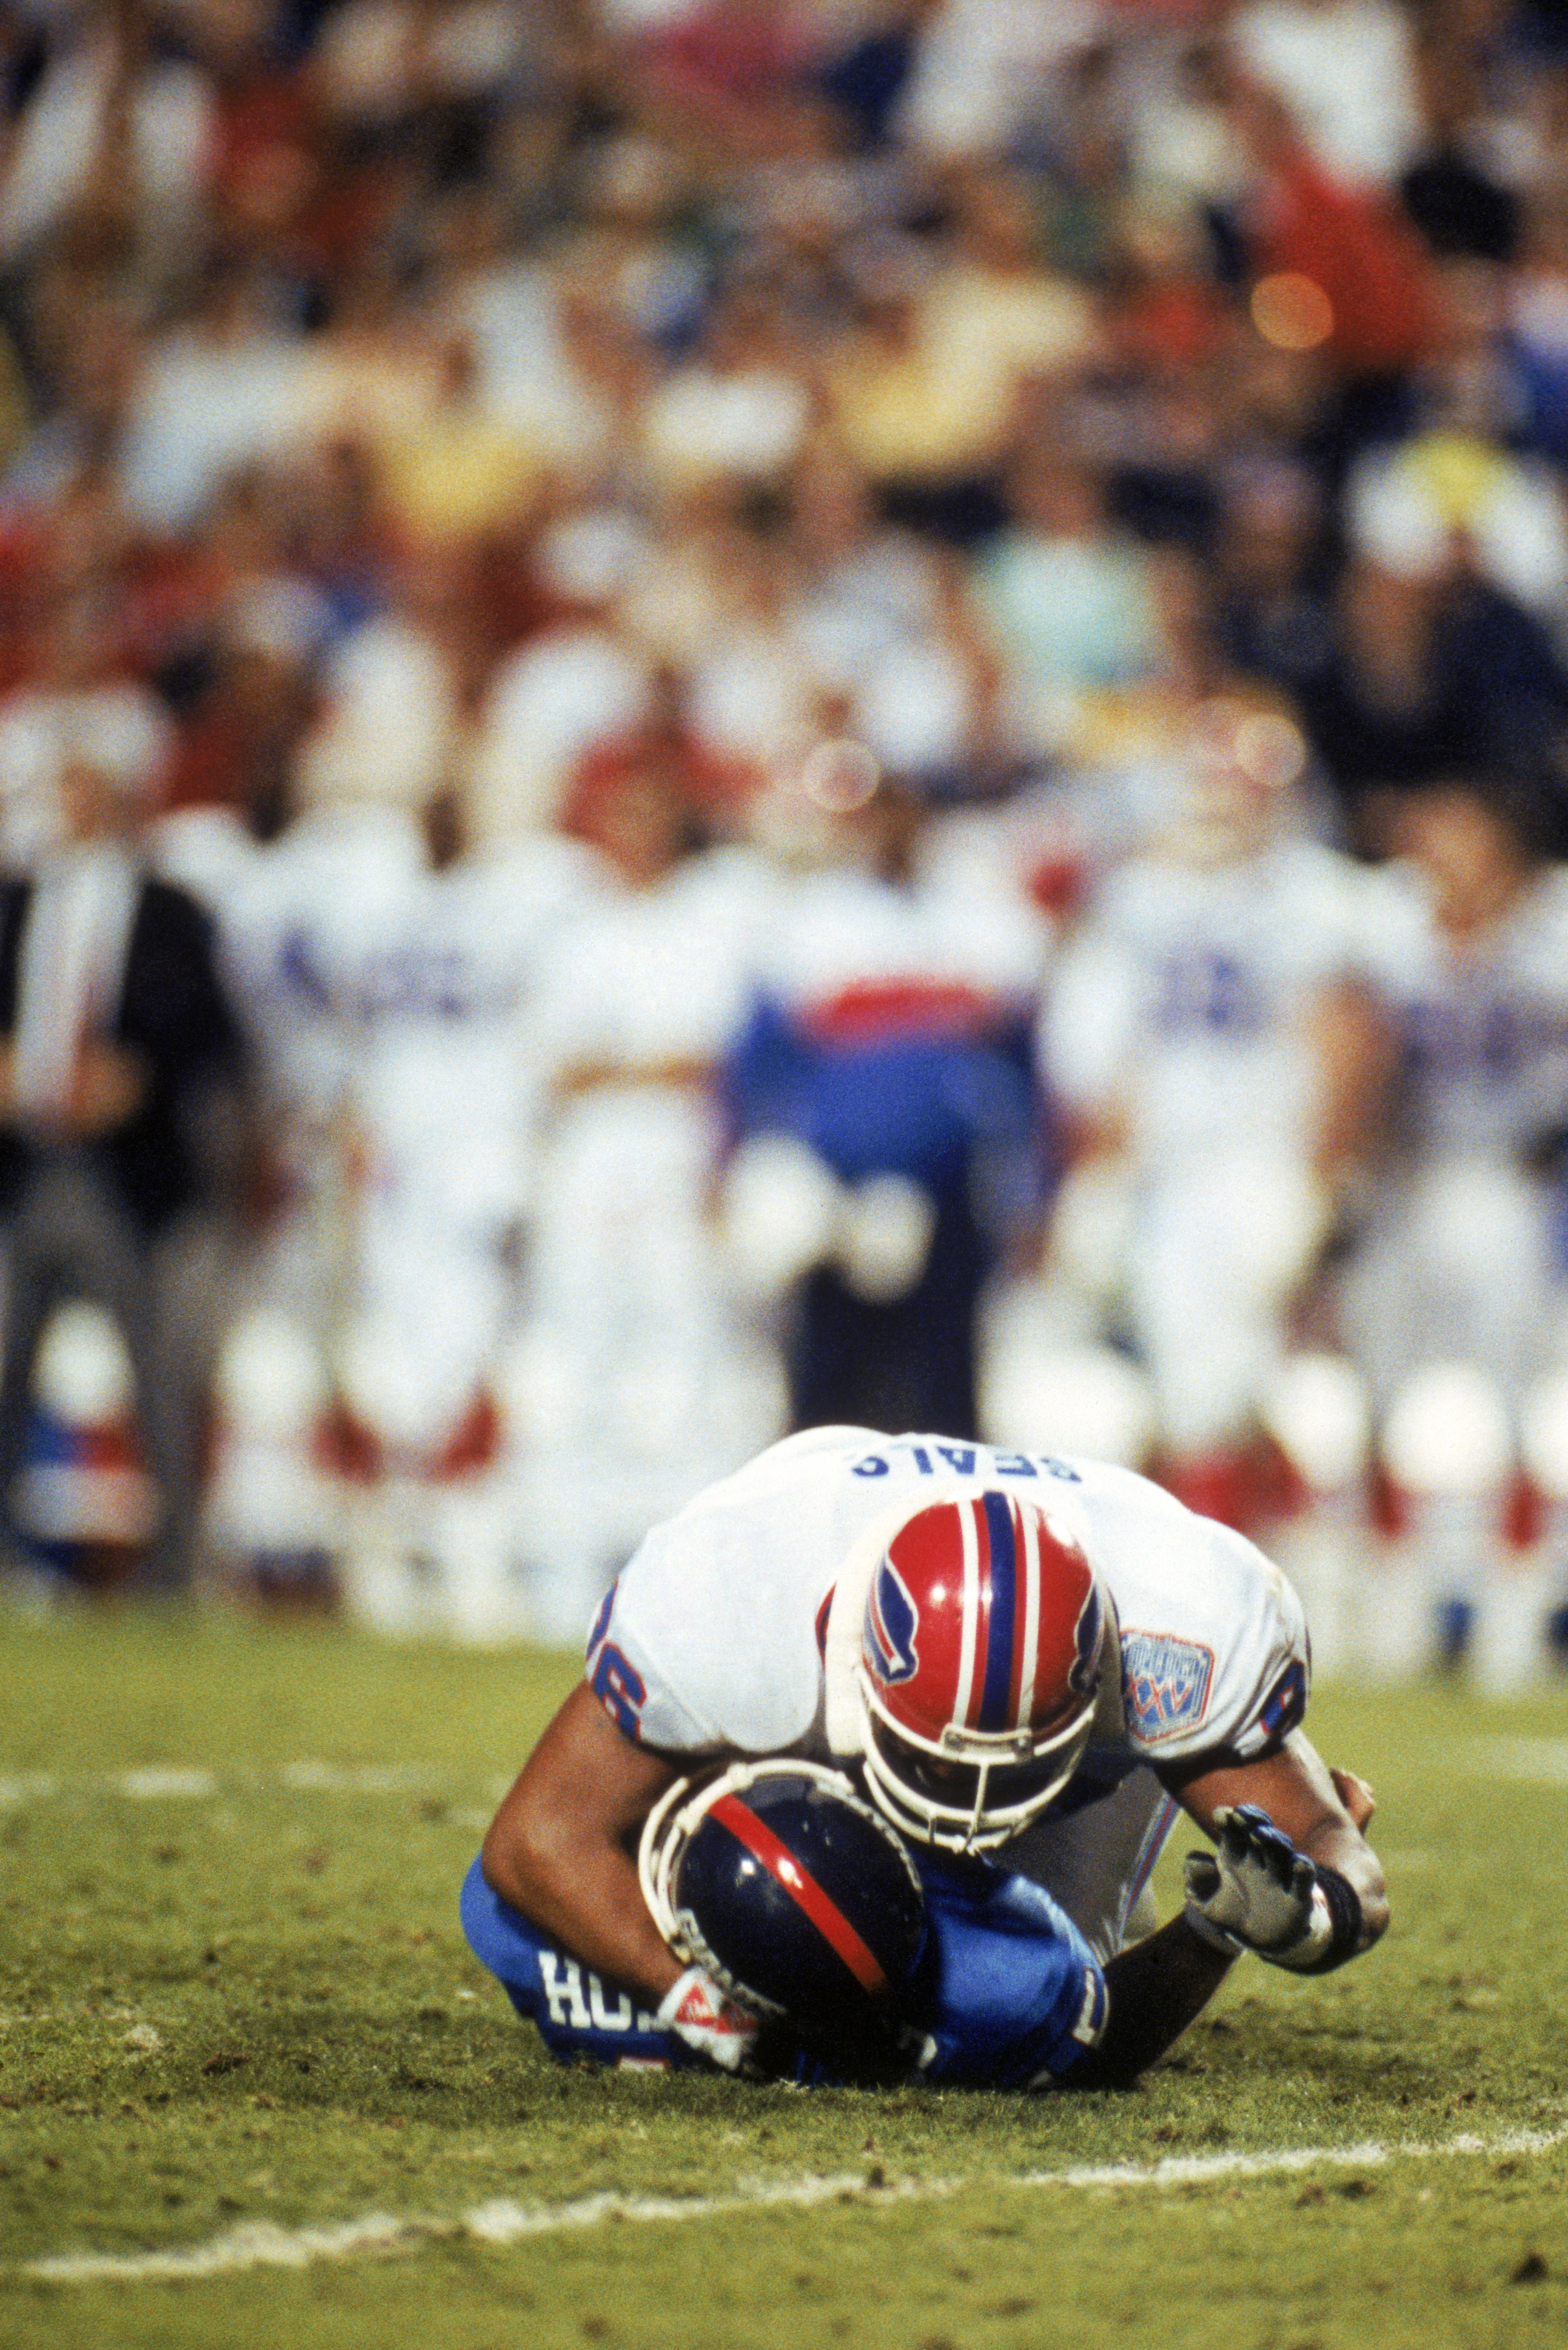 TAMPA, FL - JANUARY 27:  Defensive end Leon Seals #96 of the Buffalo Bills crushes quarterback Jeff Hostetler #15 of the New York Giants after an incomplete pass in the second quarter of Super Bowl XXV at Tampa Stadium on January 27, 1991 in Tampa, Florid